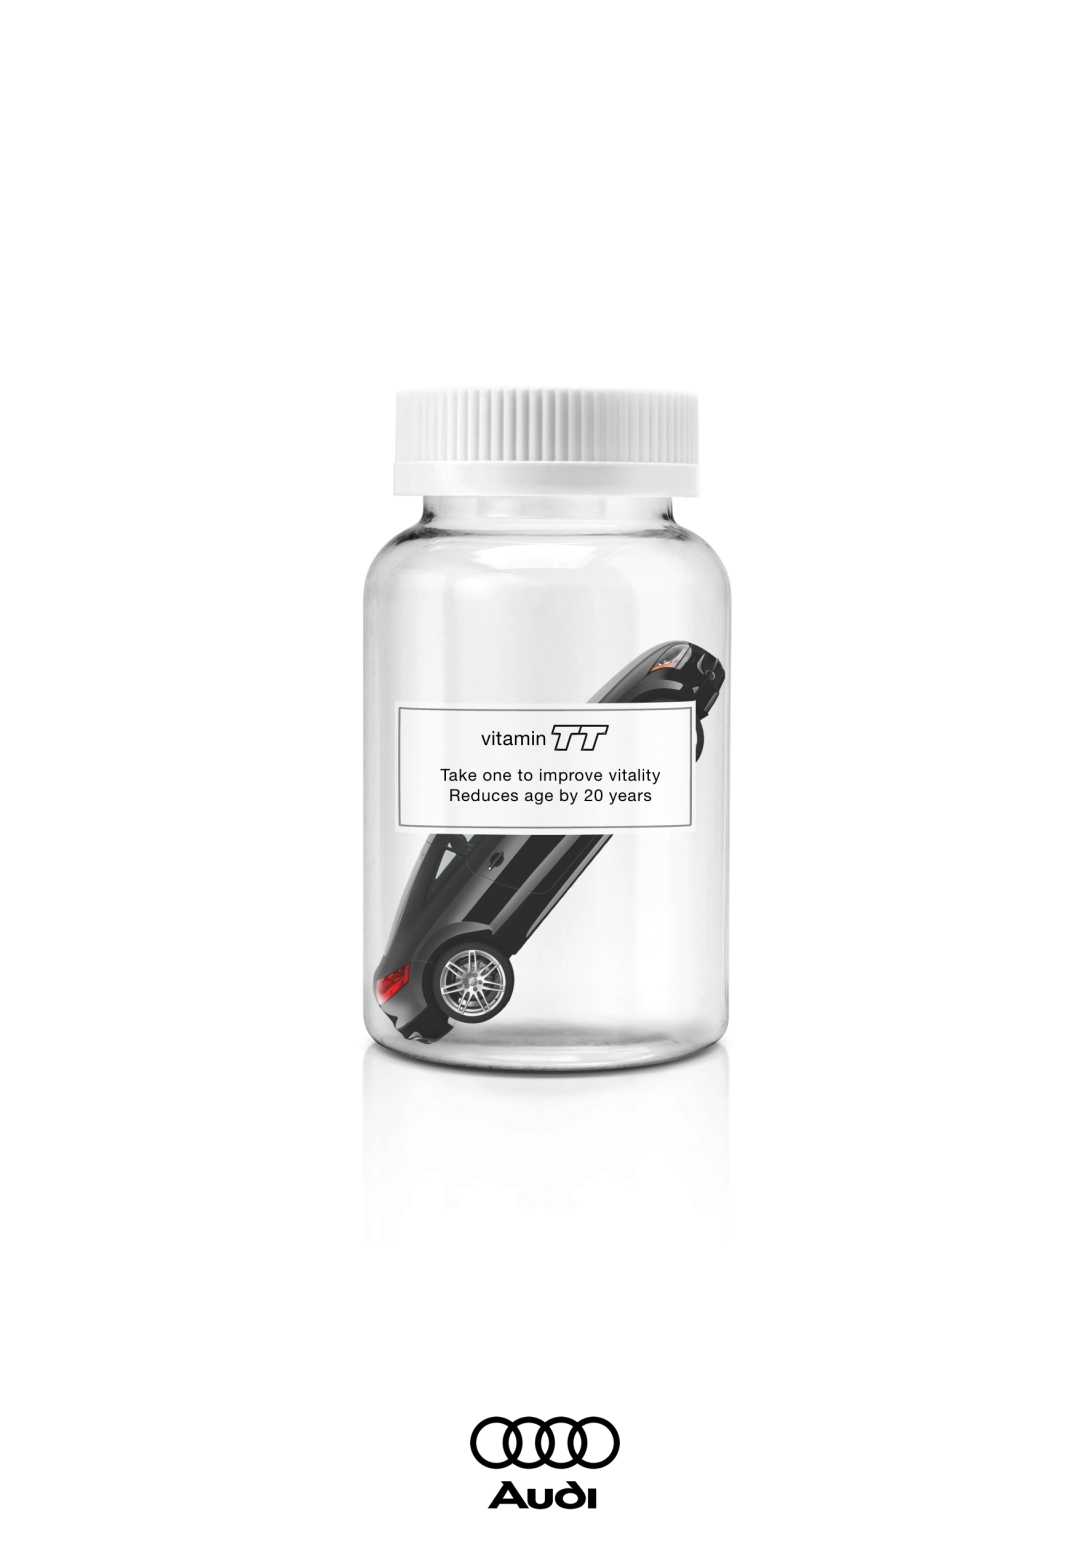 advertising concept for Audi - vitamin TT - take one to improve vitality